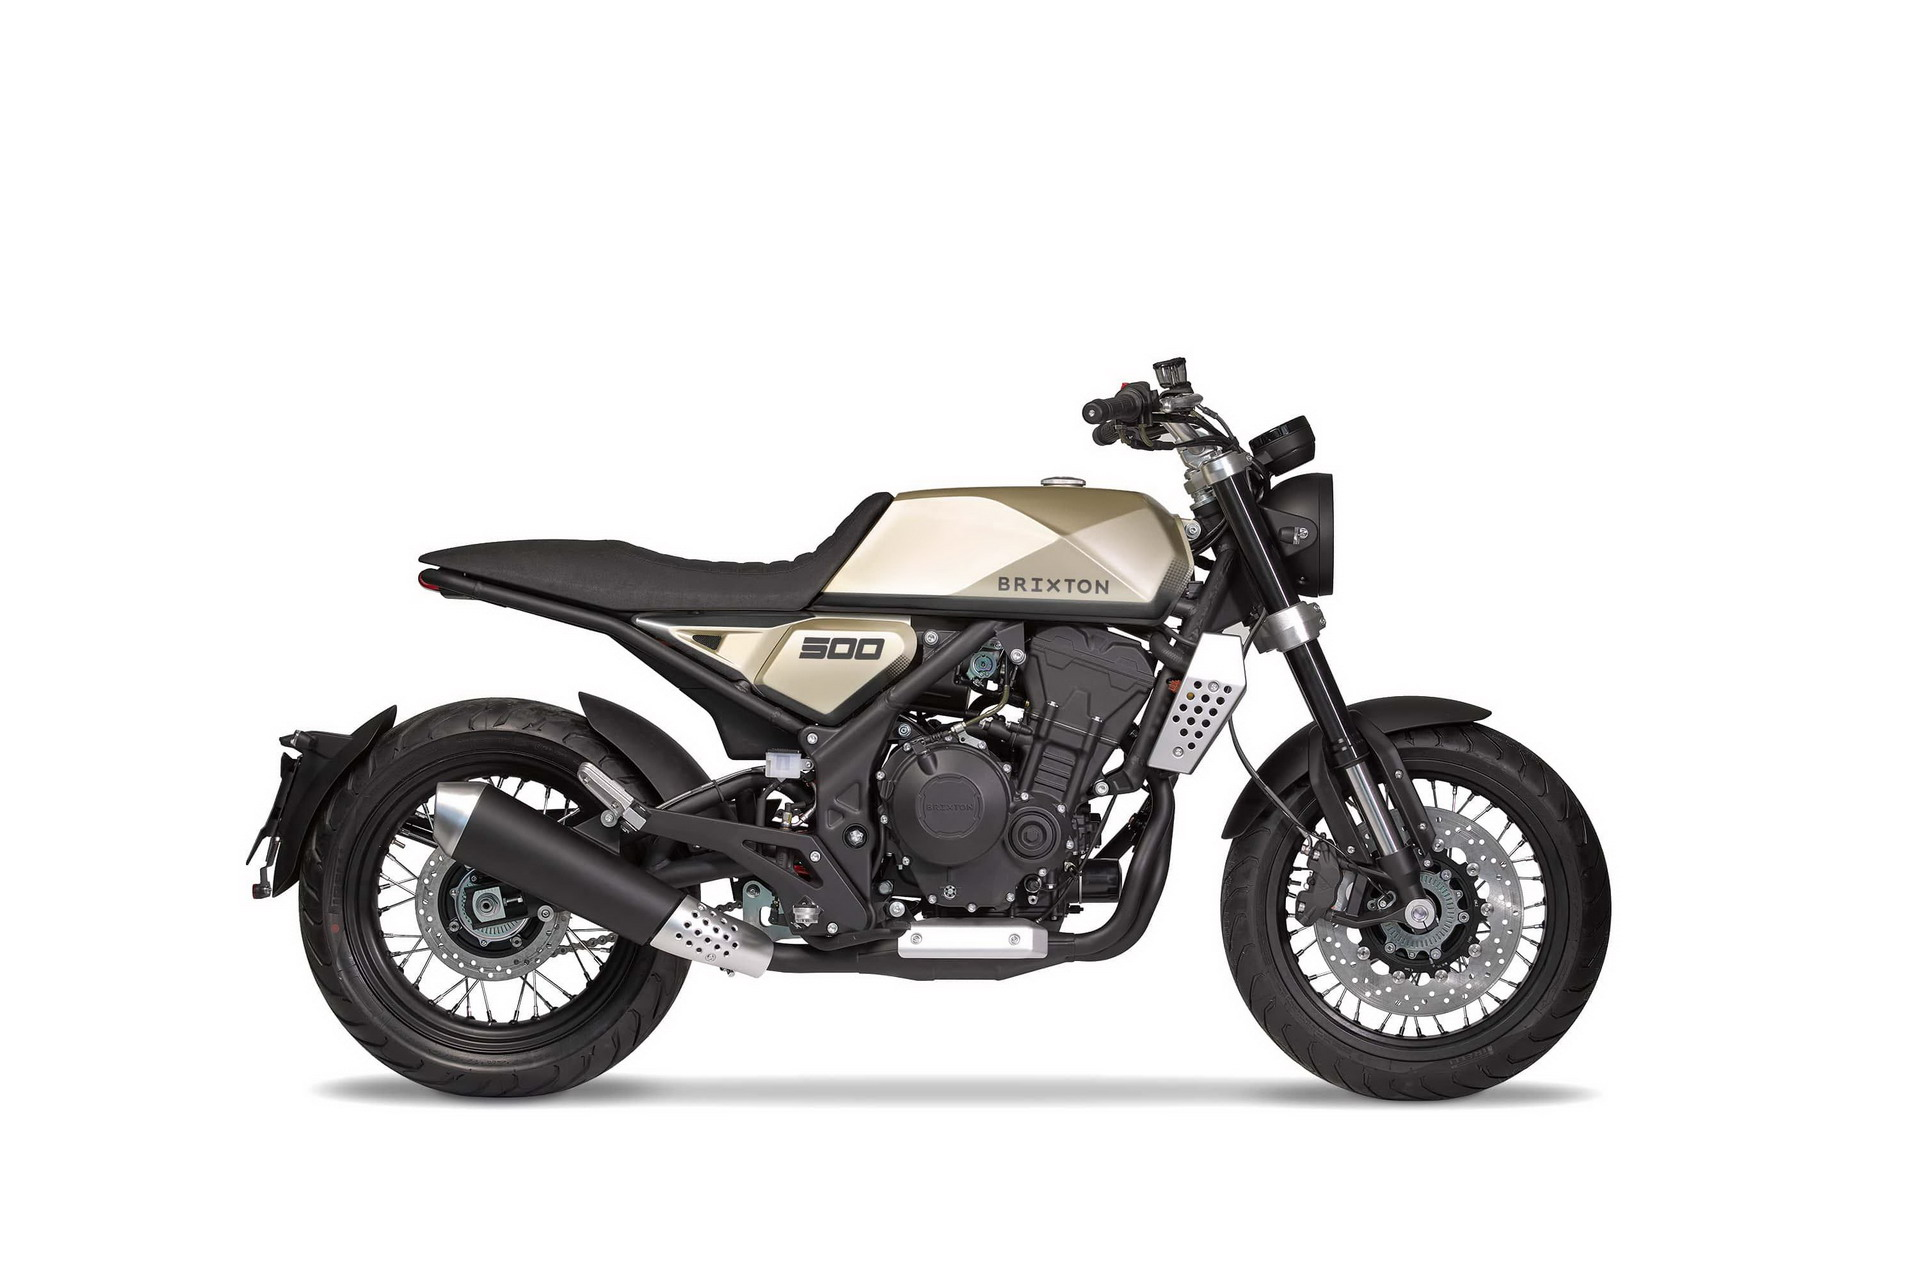 Brixton con due concept bike da 500 CC all'Eicma 2018